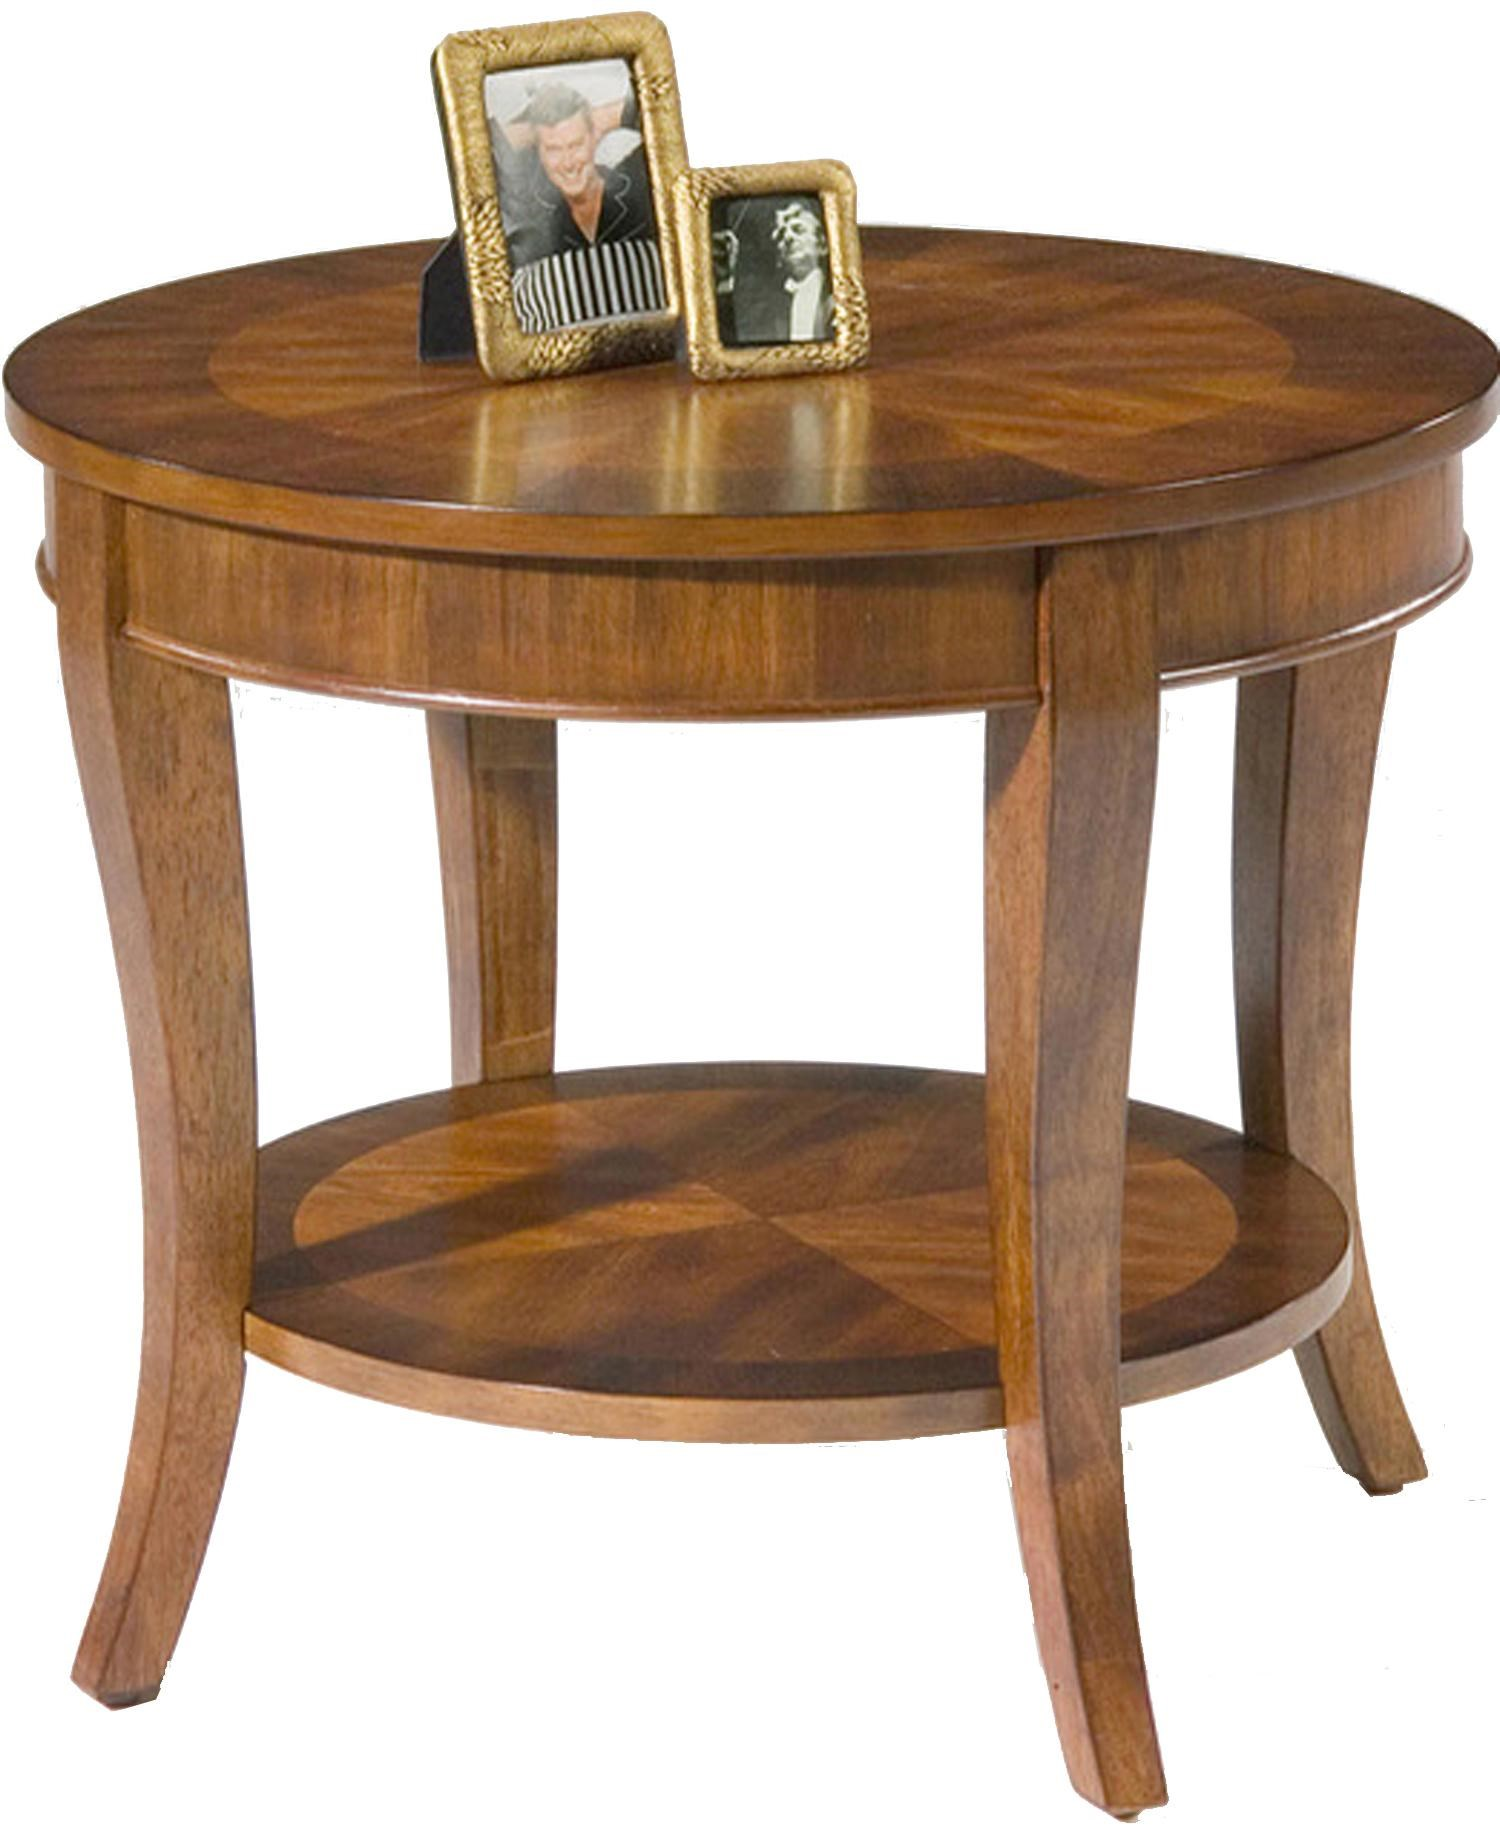 Merveilleux Bradshaw Round End Table With Shelf By Liberty Furniture